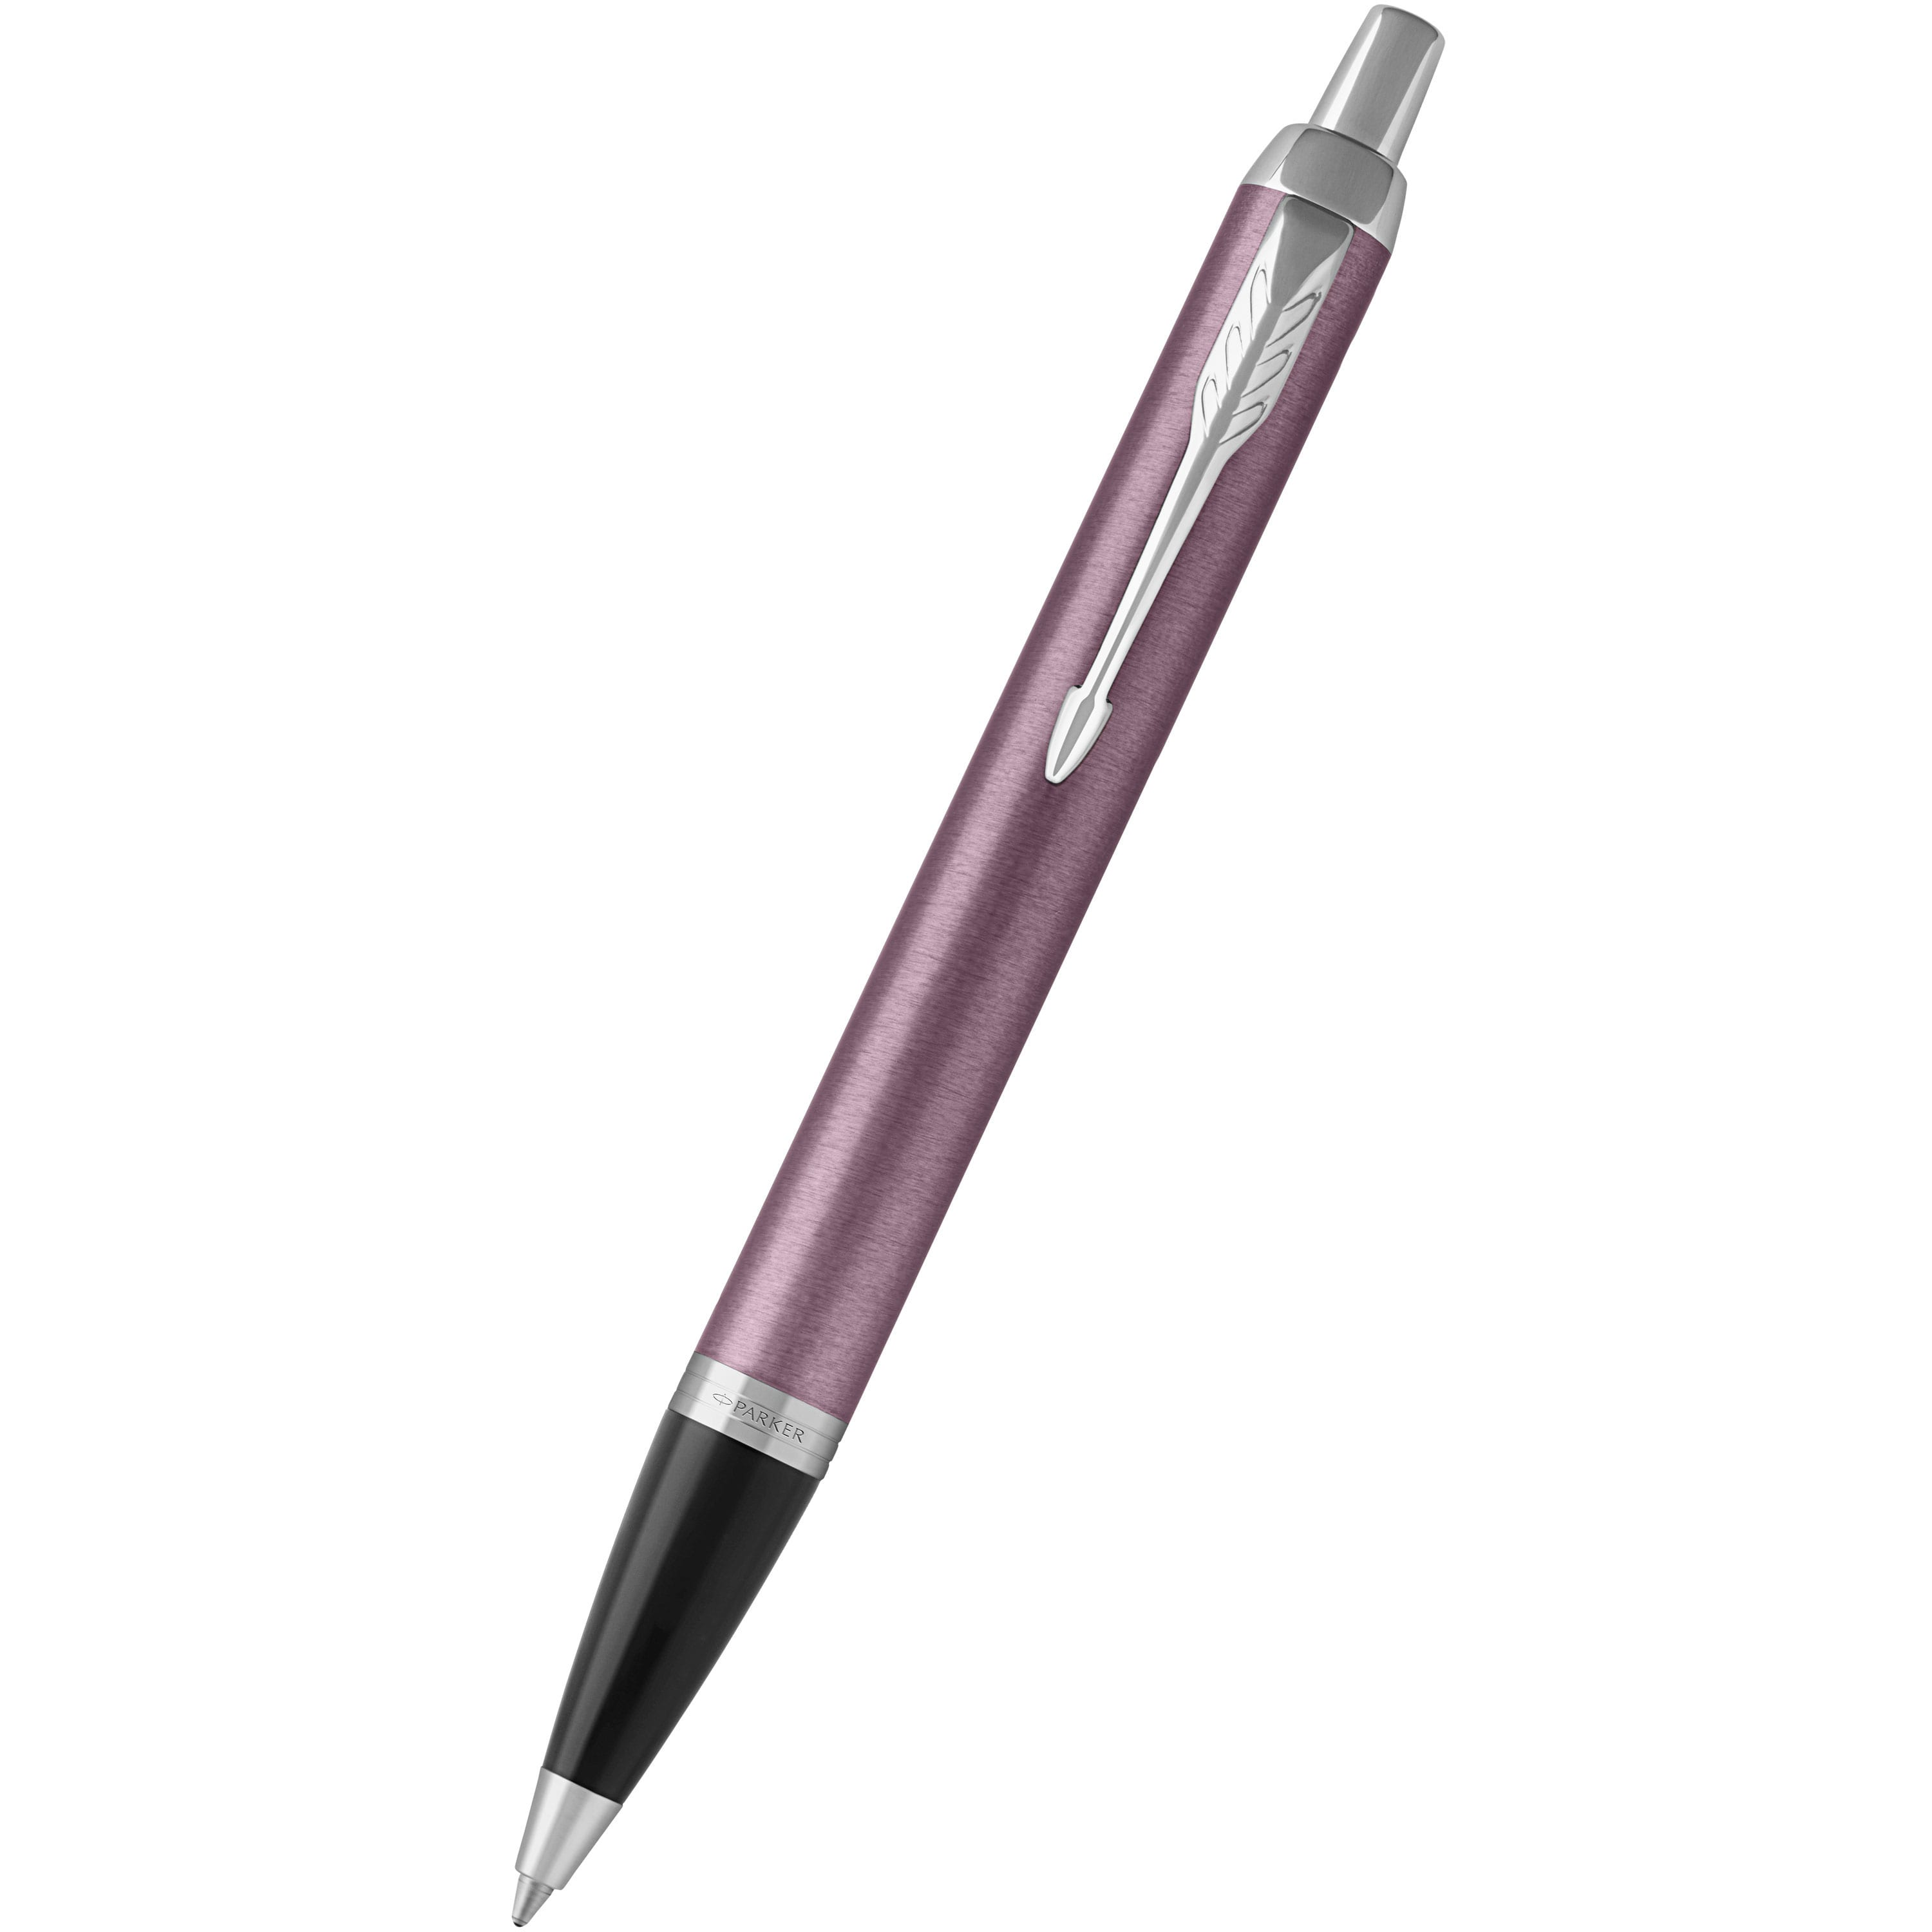 Parker IM Light Purple with Chrome Trim Ballpoint Pen